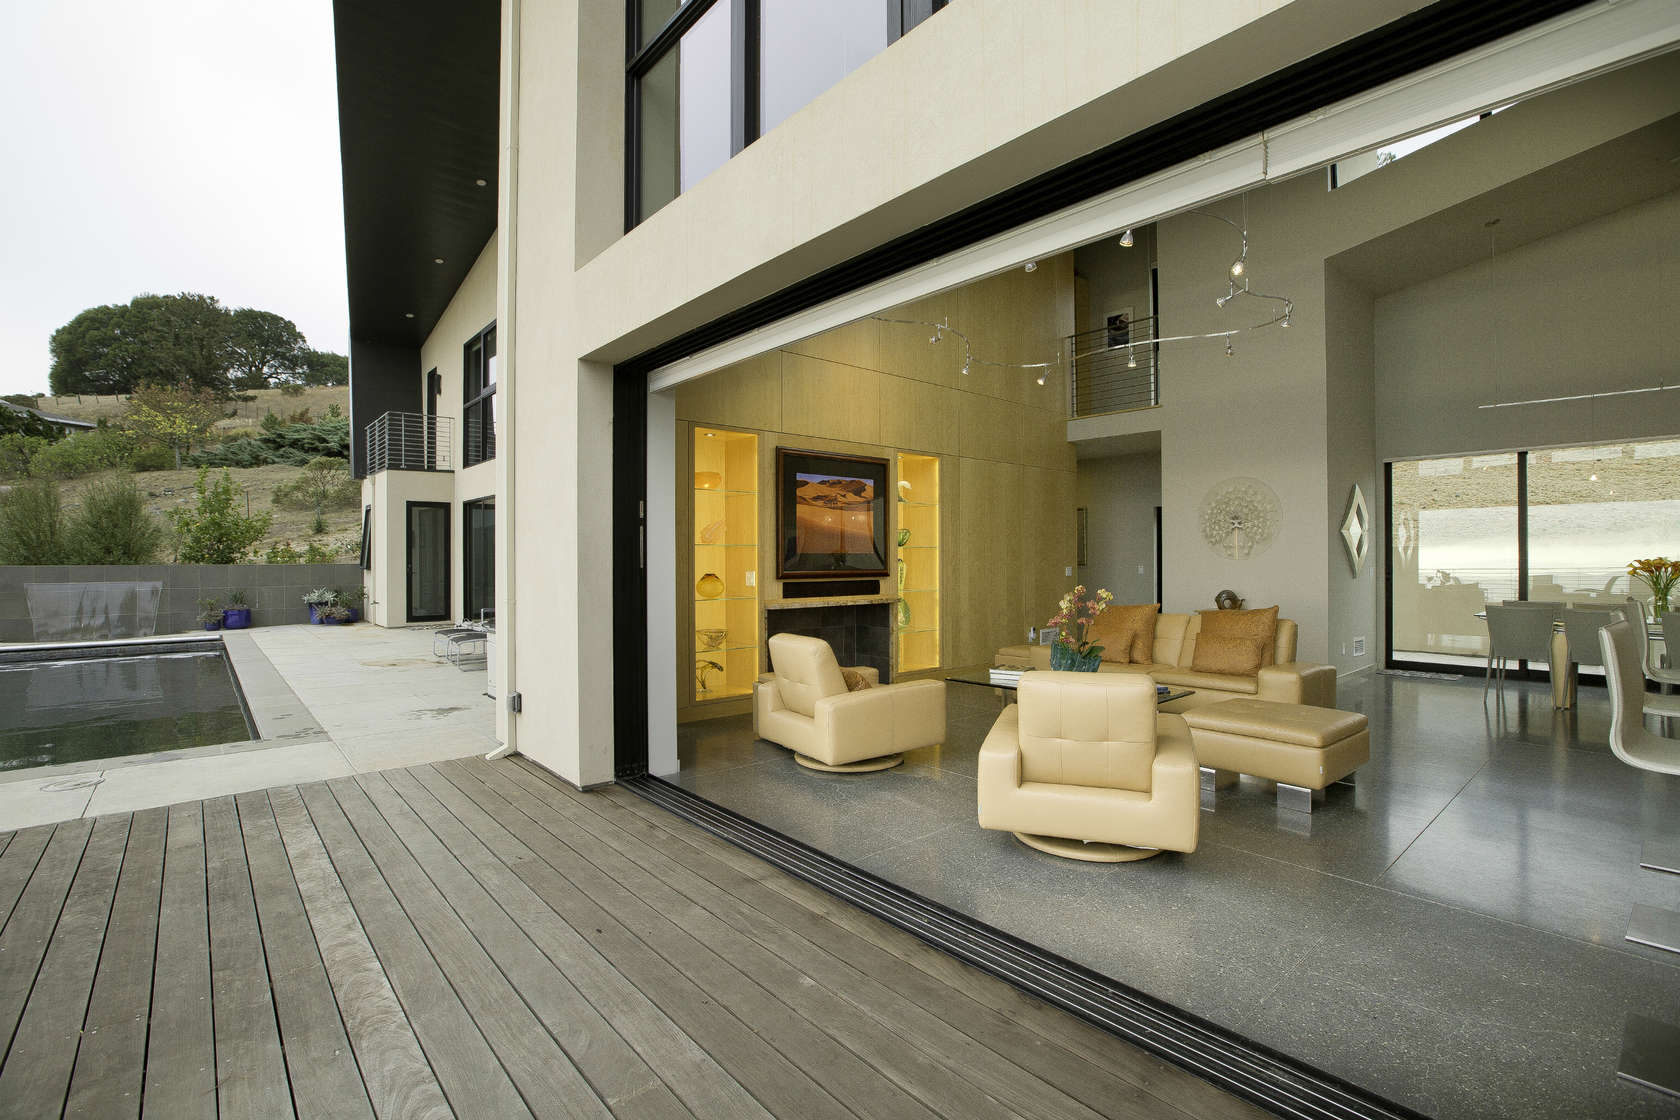 Open Patio - Custom home in sonoma gives a modern twist to wine country